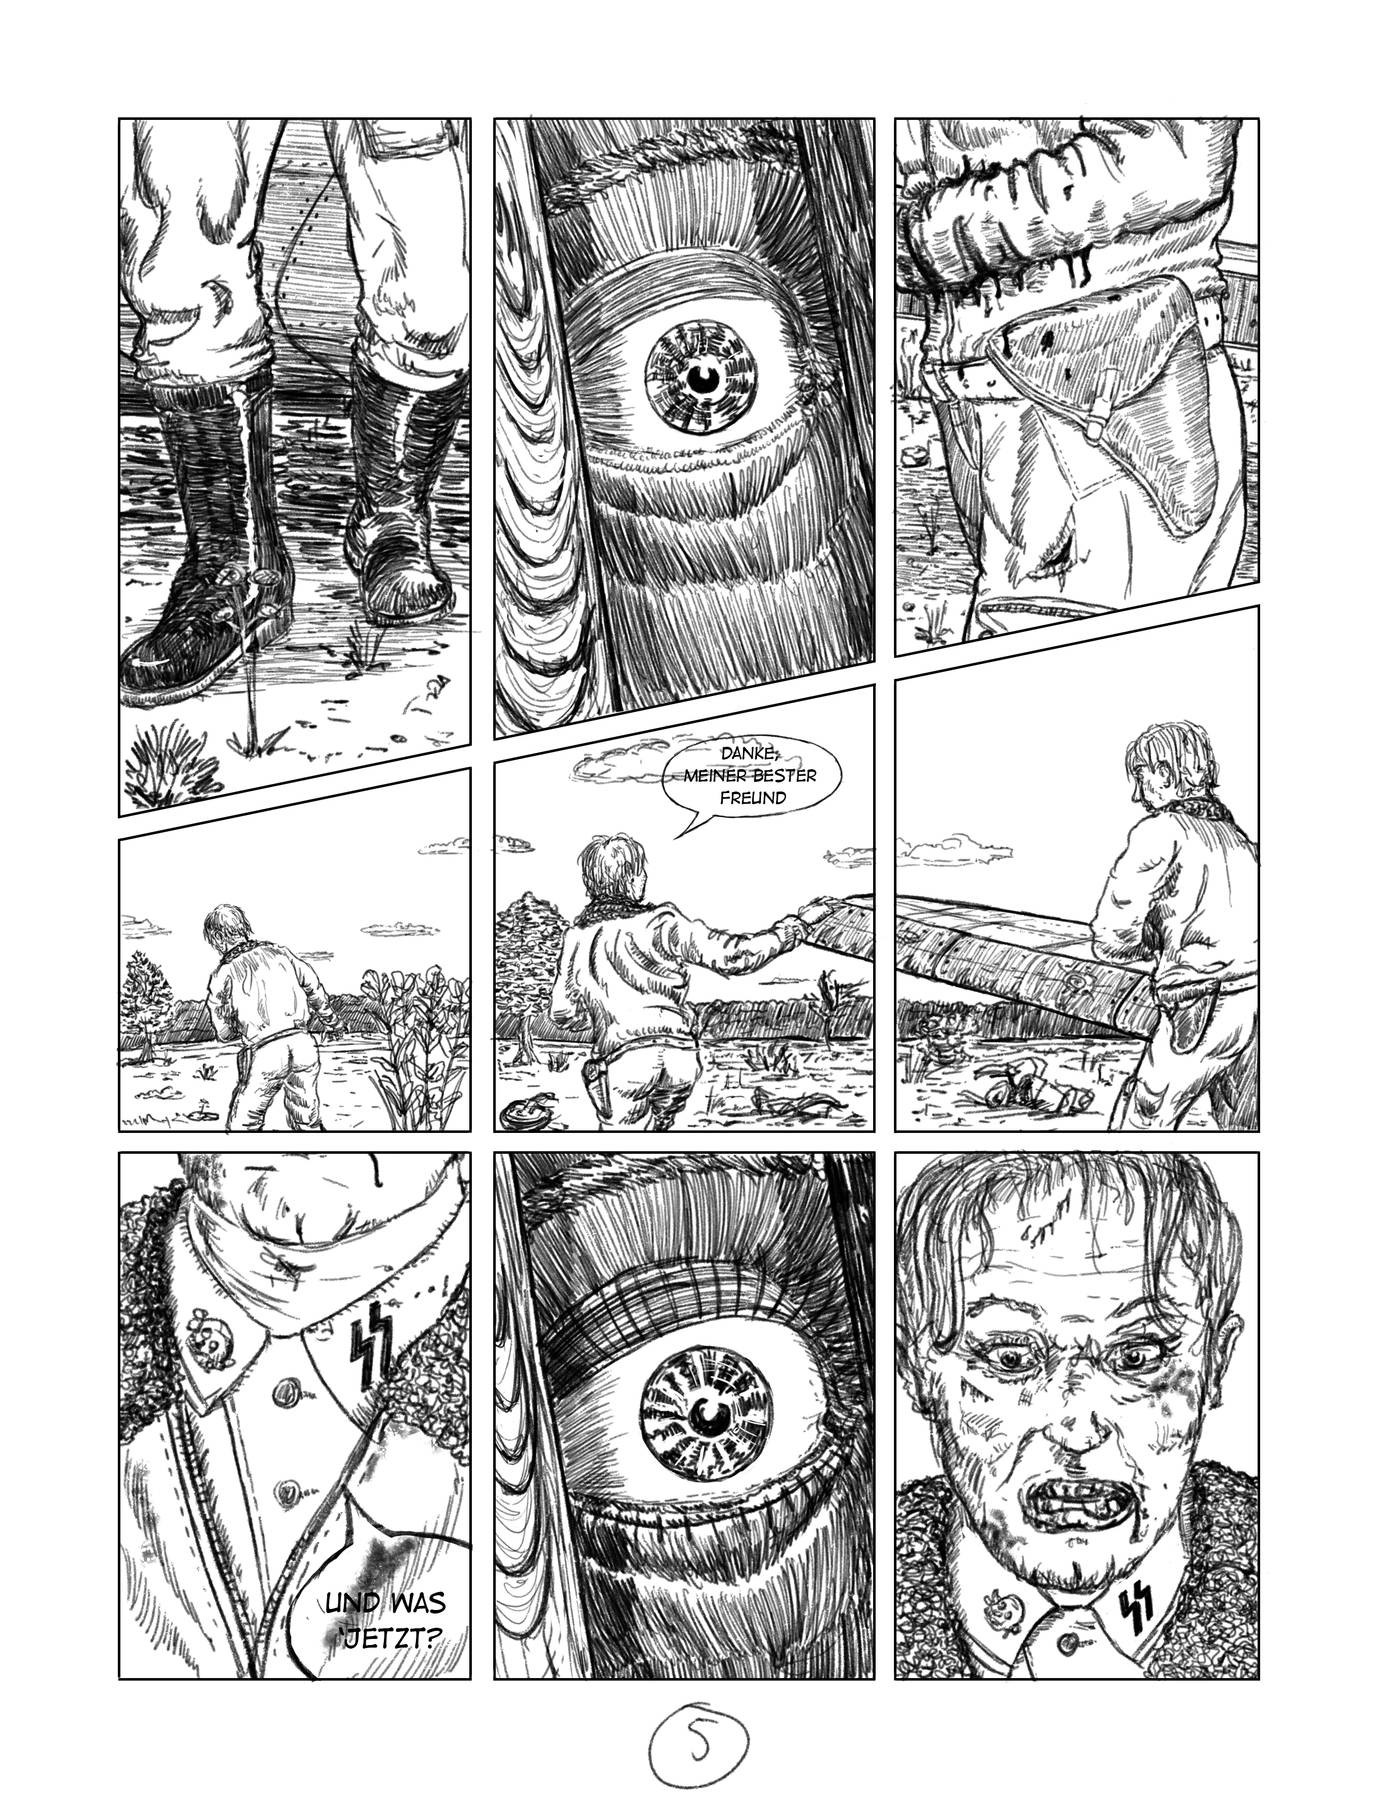 Bobby de groot layout pg5 copy